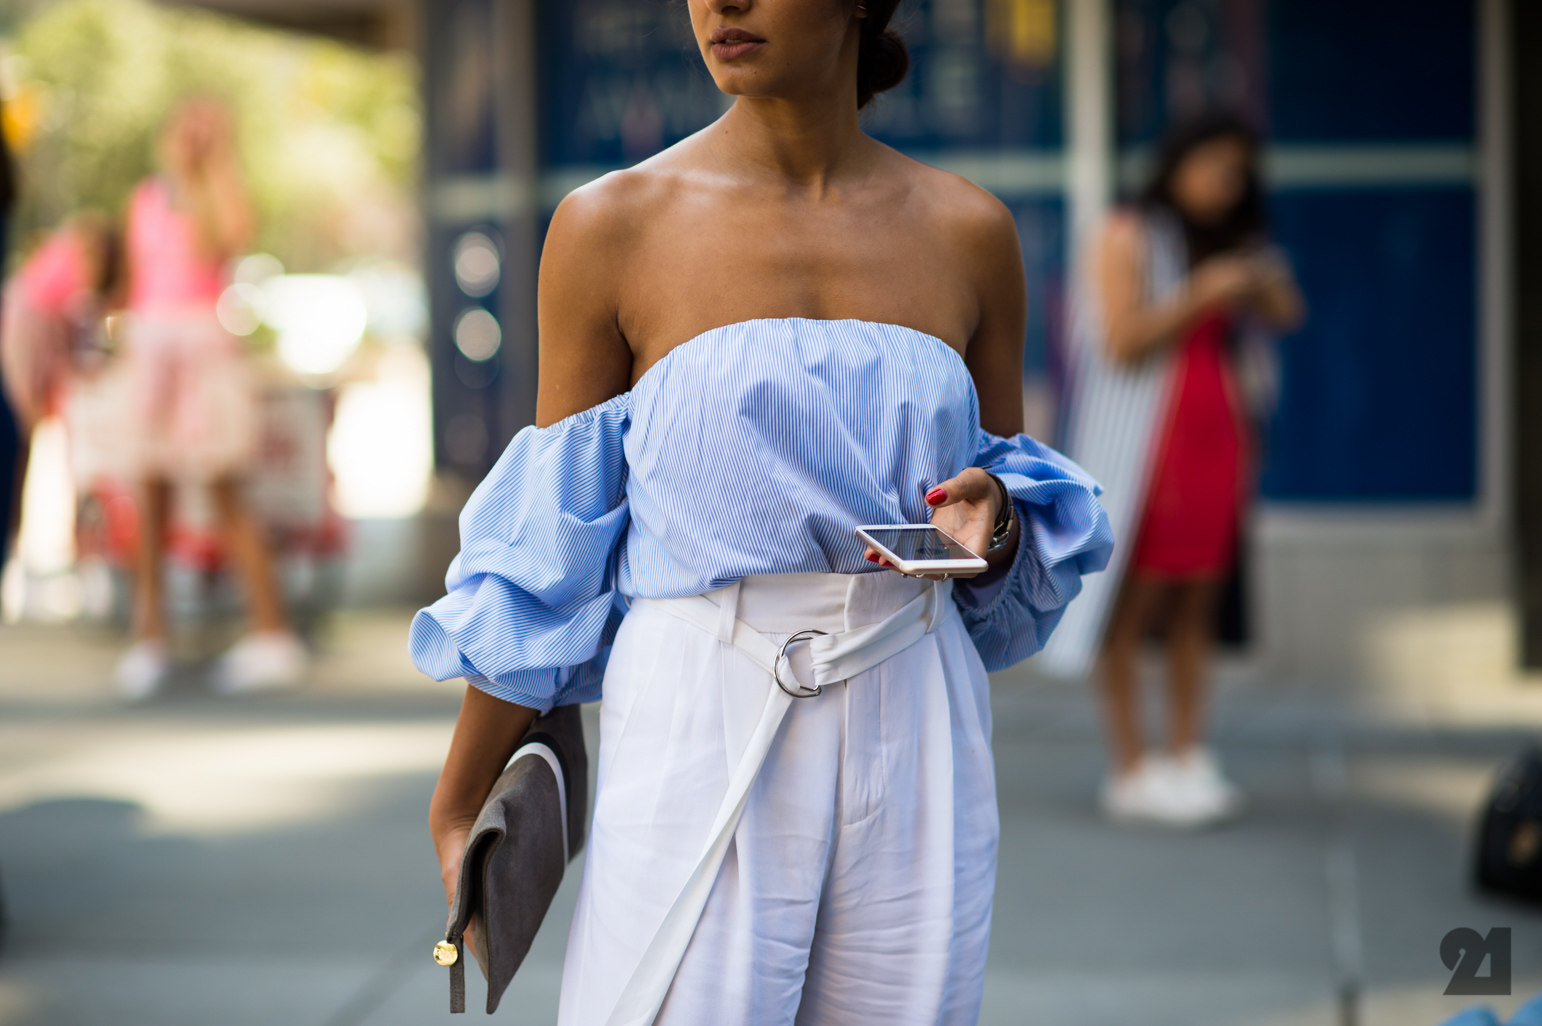 d5baae7e444928 One of our favorite trends this season—the off-the-shoulder top—is chic and  surprisingly versatile. Much like the crop top